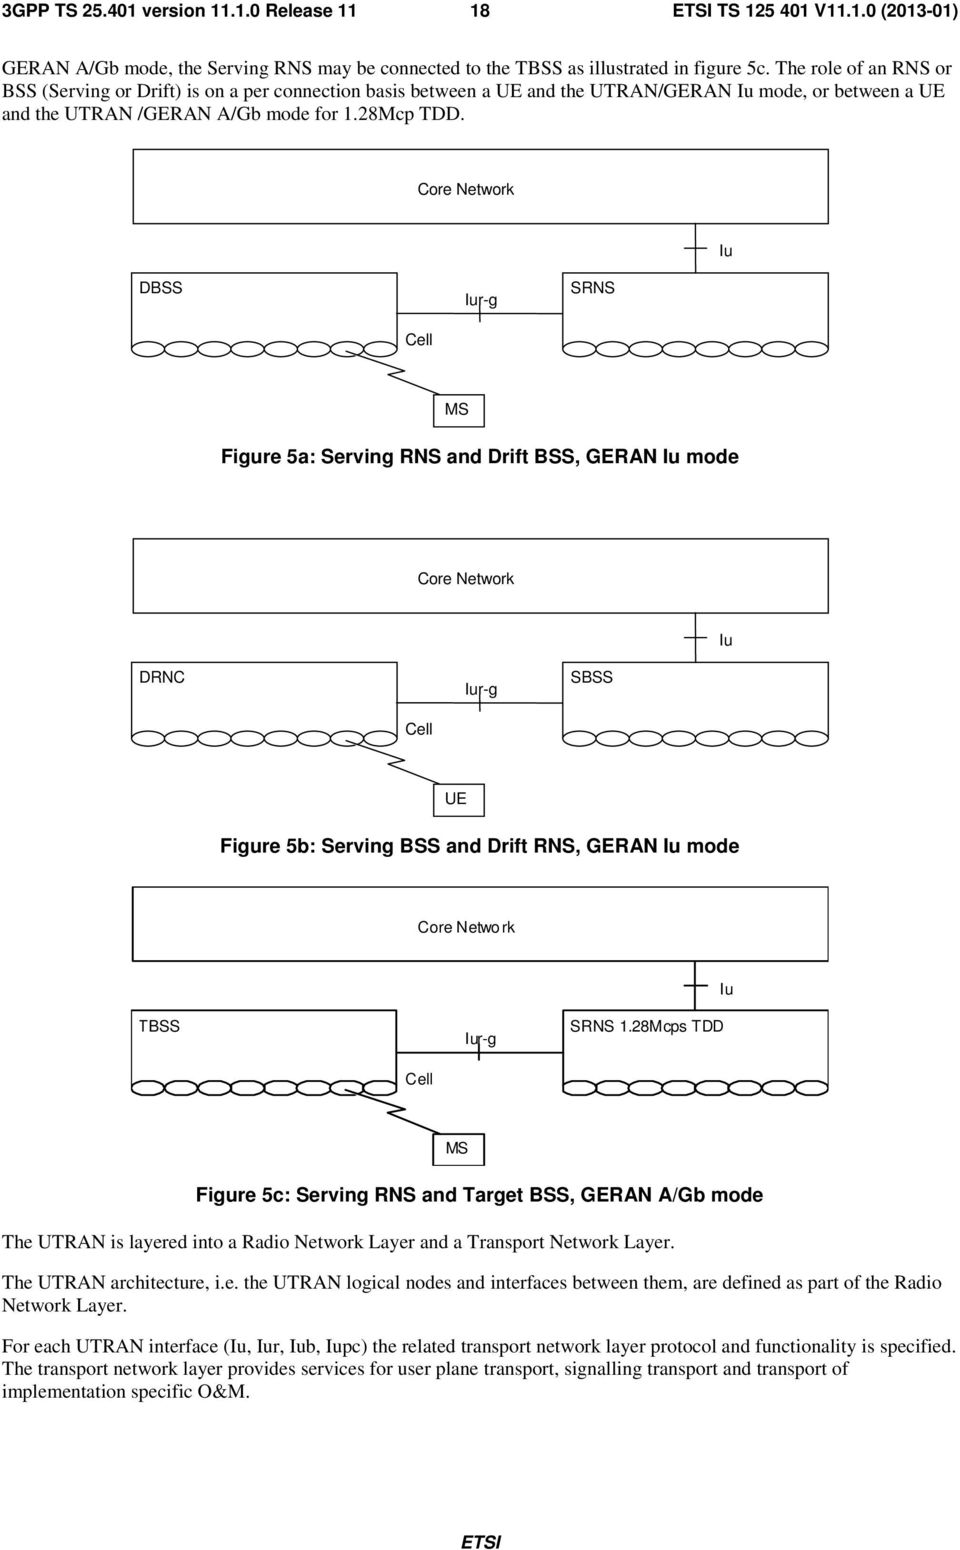 Core Network Iu DBSS Iur-g SRNS Cell MS Figure 5a: Serving RNS and Drift BSS, GERAN Iu mode Core Network Iu DRNC Iur-g SBSS Cell UE Figure 5b: Serving BSS and Drift RNS, GERAN Iu mode Core Netwo rk